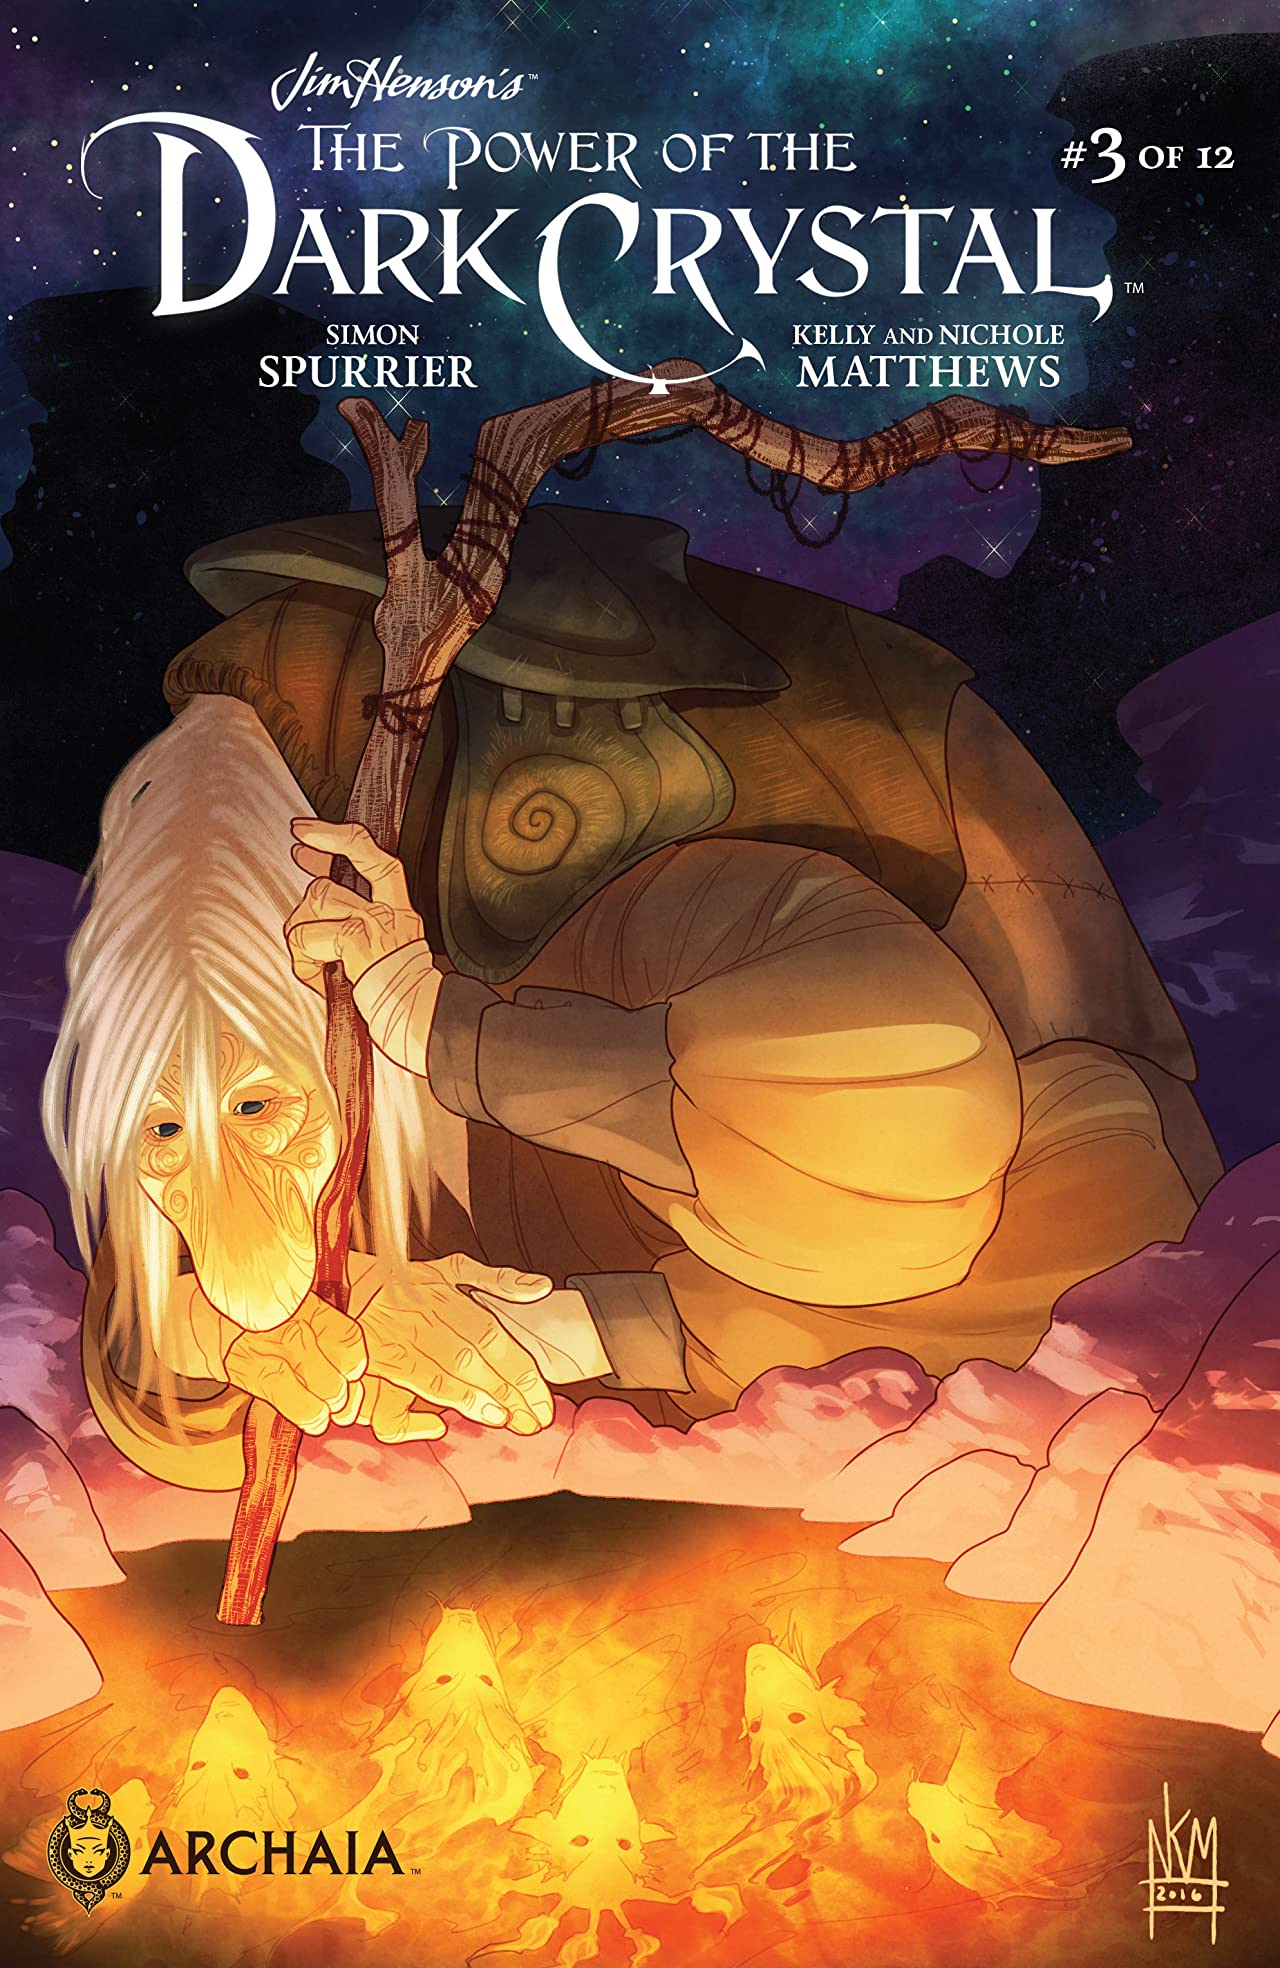 Jim Henson's The Power of the Dark Crystal #3 (of 12)